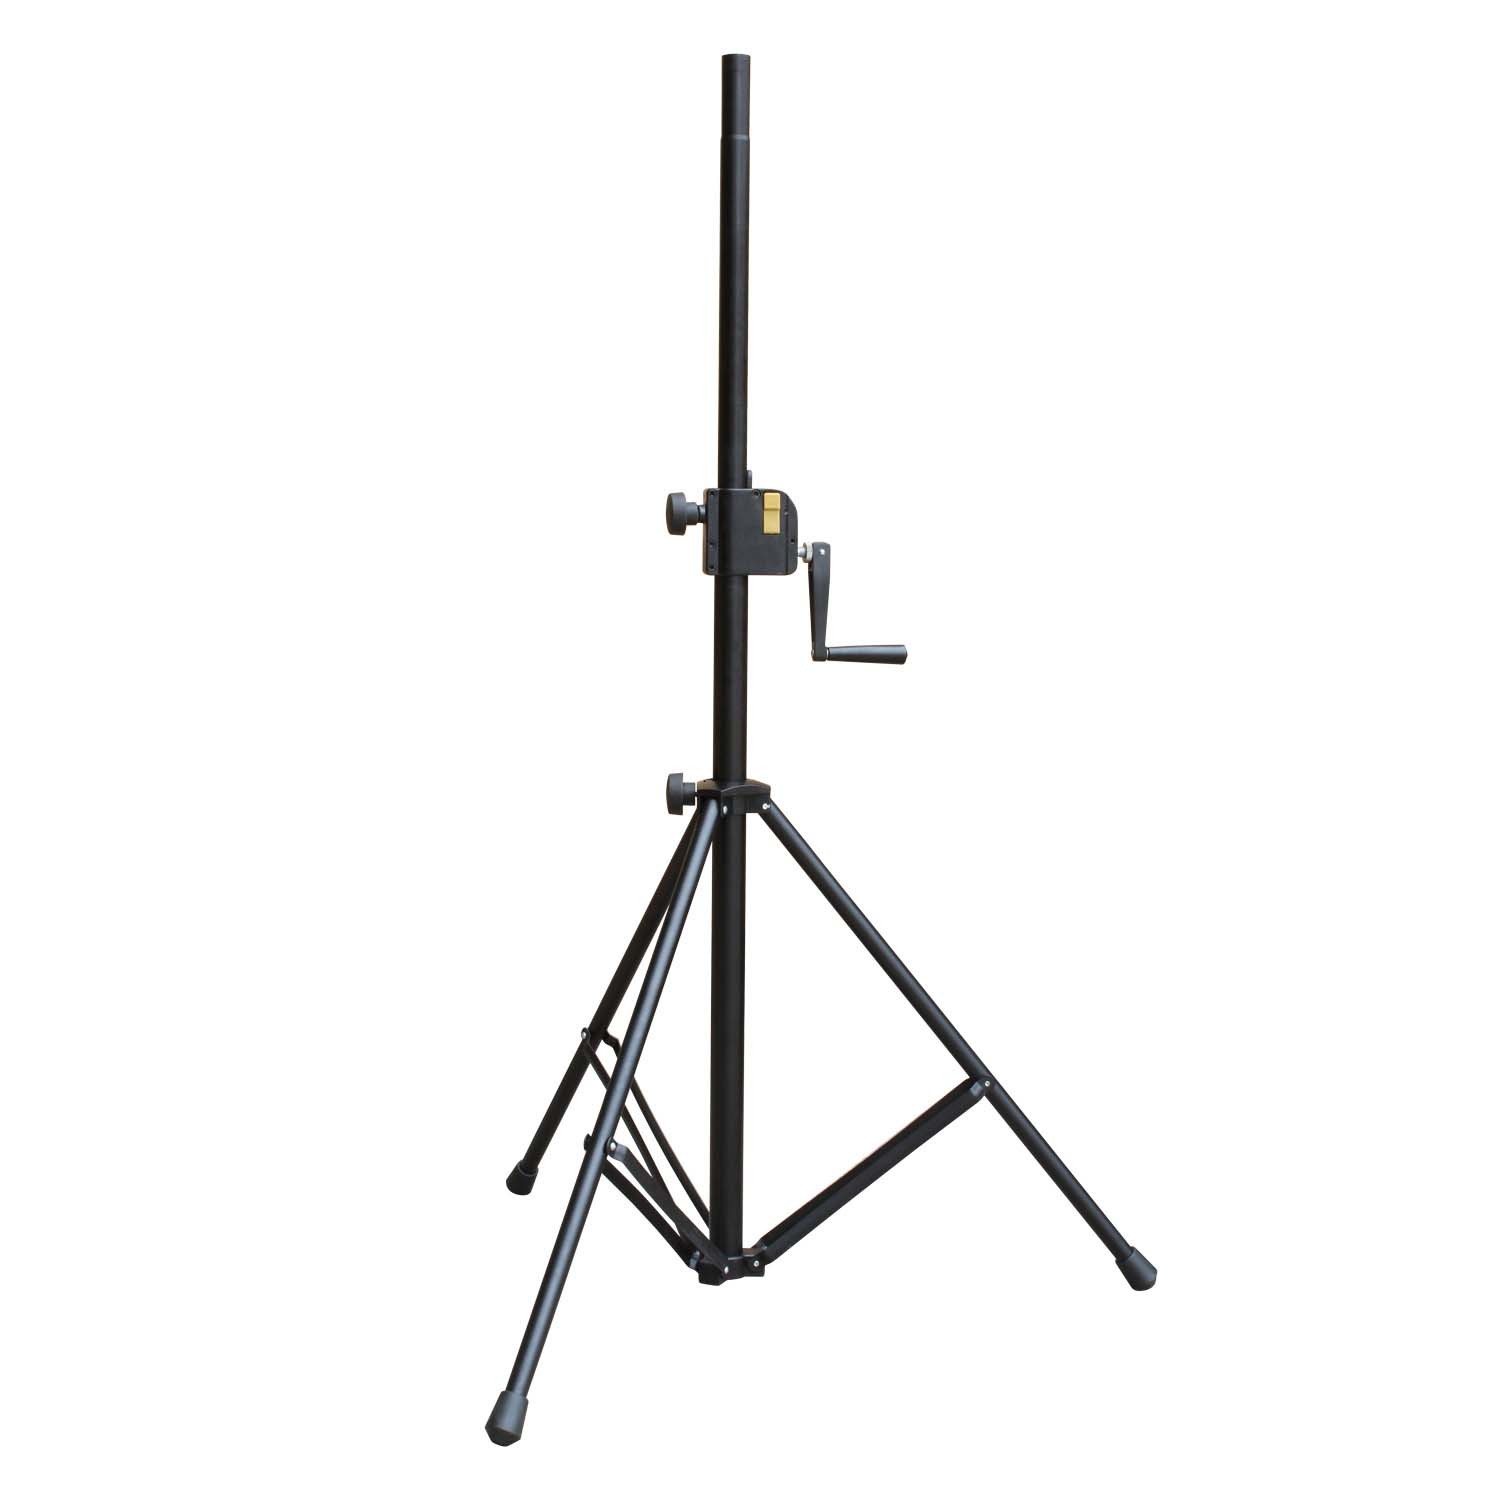 Rockstand Rs Steel Speaker Stand With Hand Crank